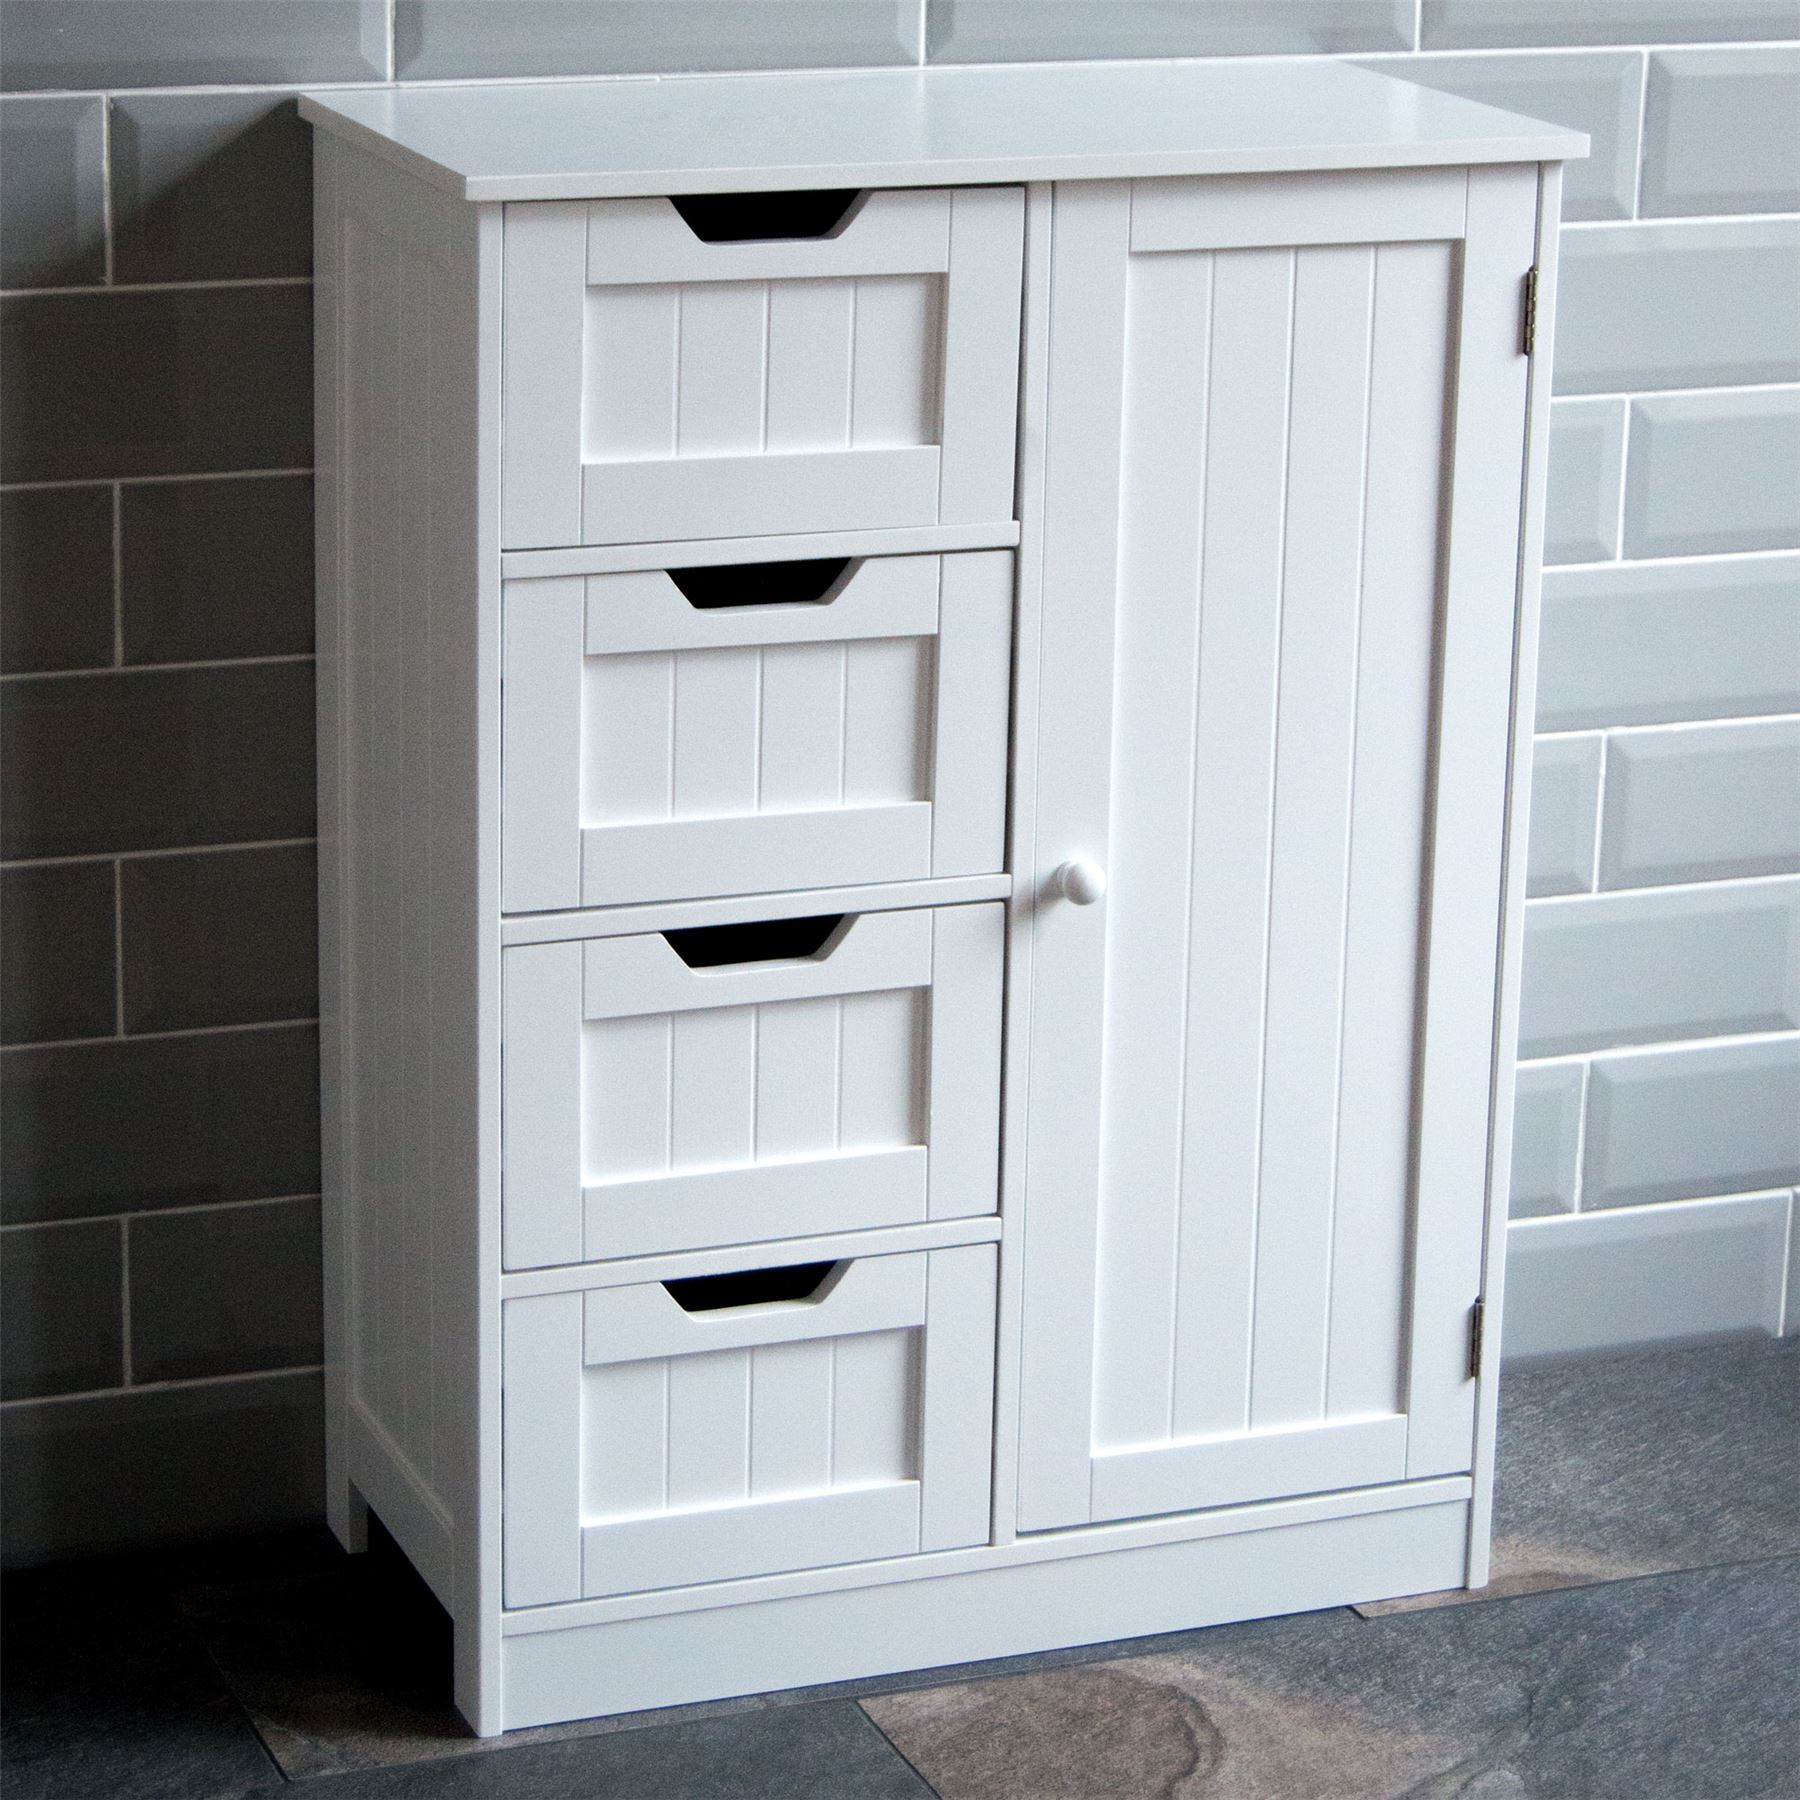 Details About Bathroom 4 Drawer Cabinet Door Storage Cupboard Wooden White Home Discount throughout measurements 1800 X 1800